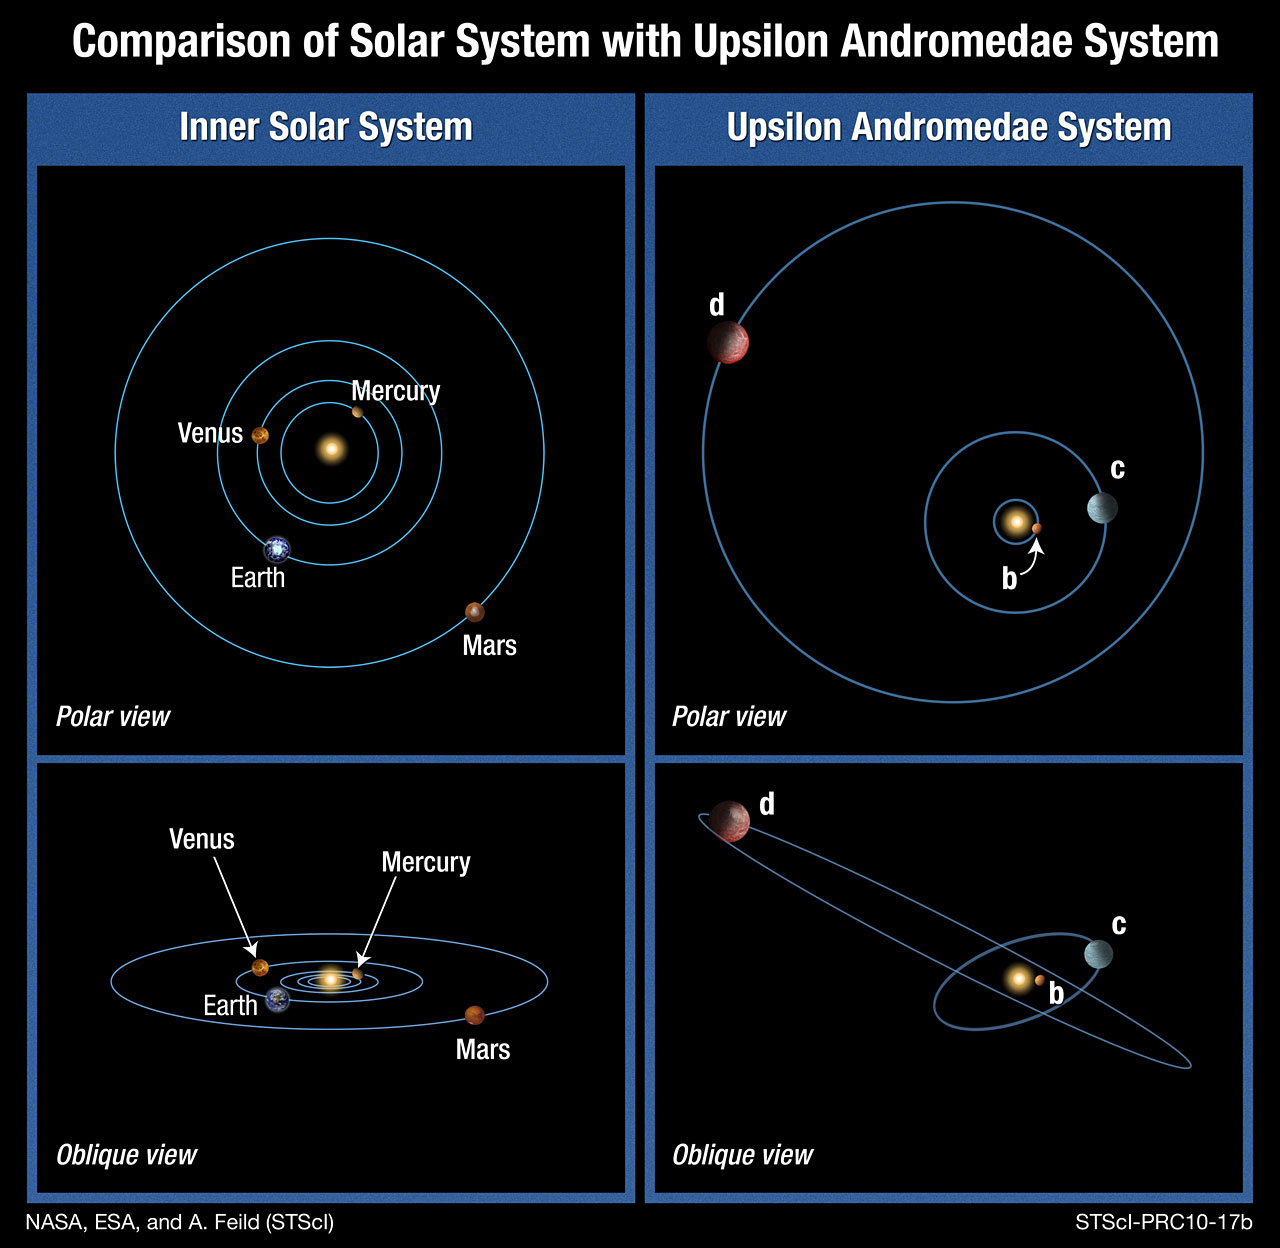 solar system models comparisons - photo #36